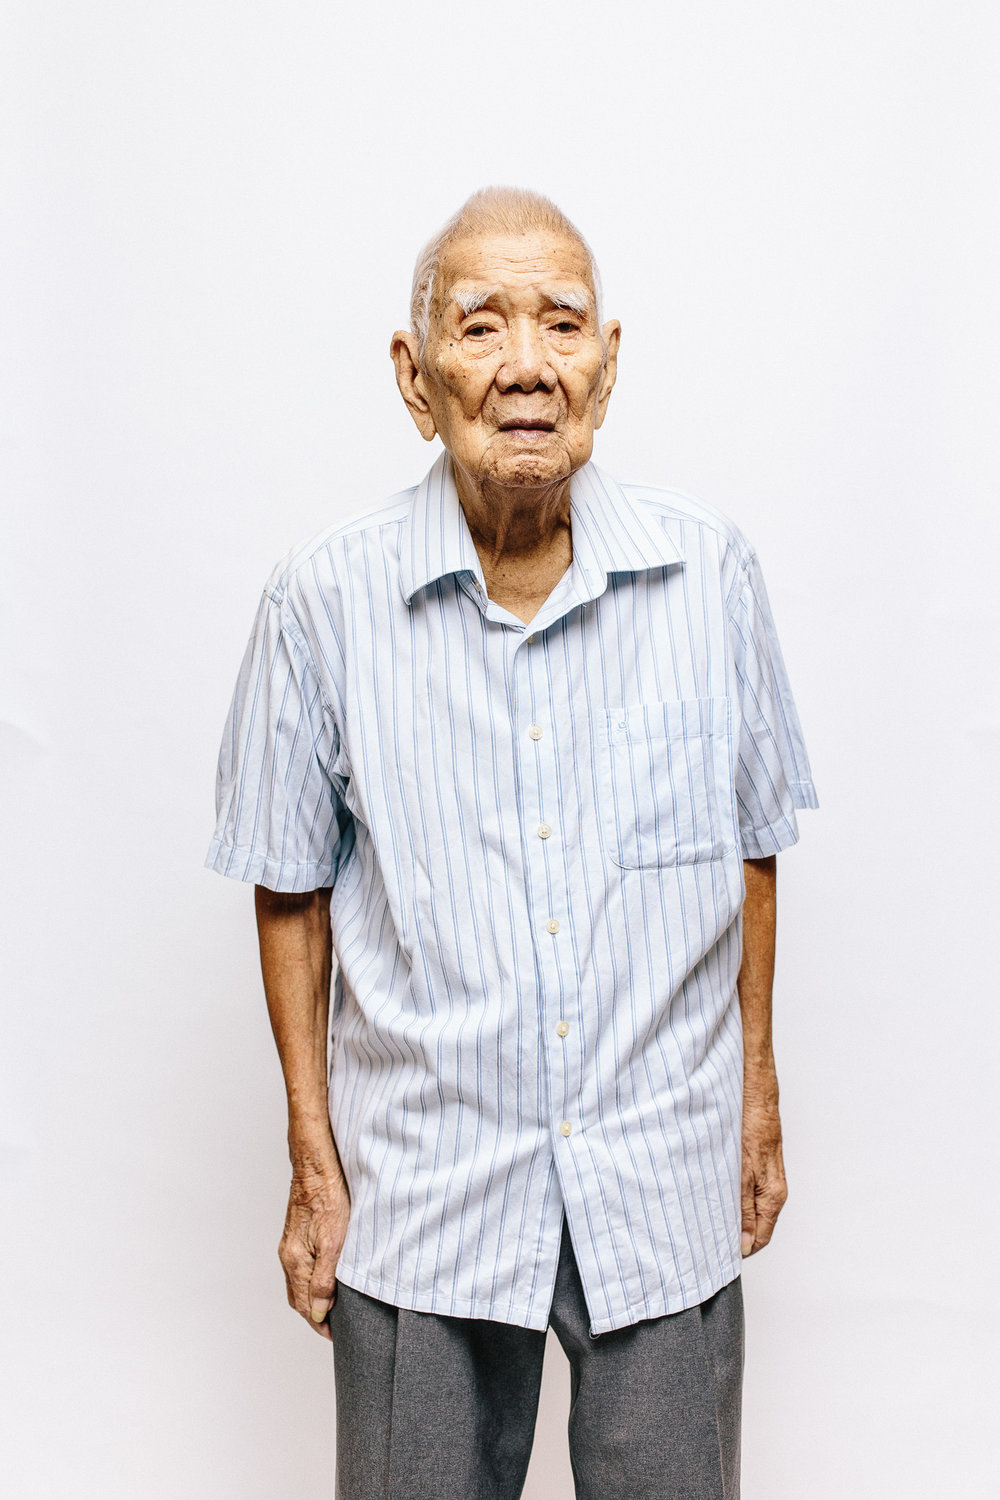 zainal-zainal-studio-centenarians-care-duke-nus-singapore-photographer-08.jpg